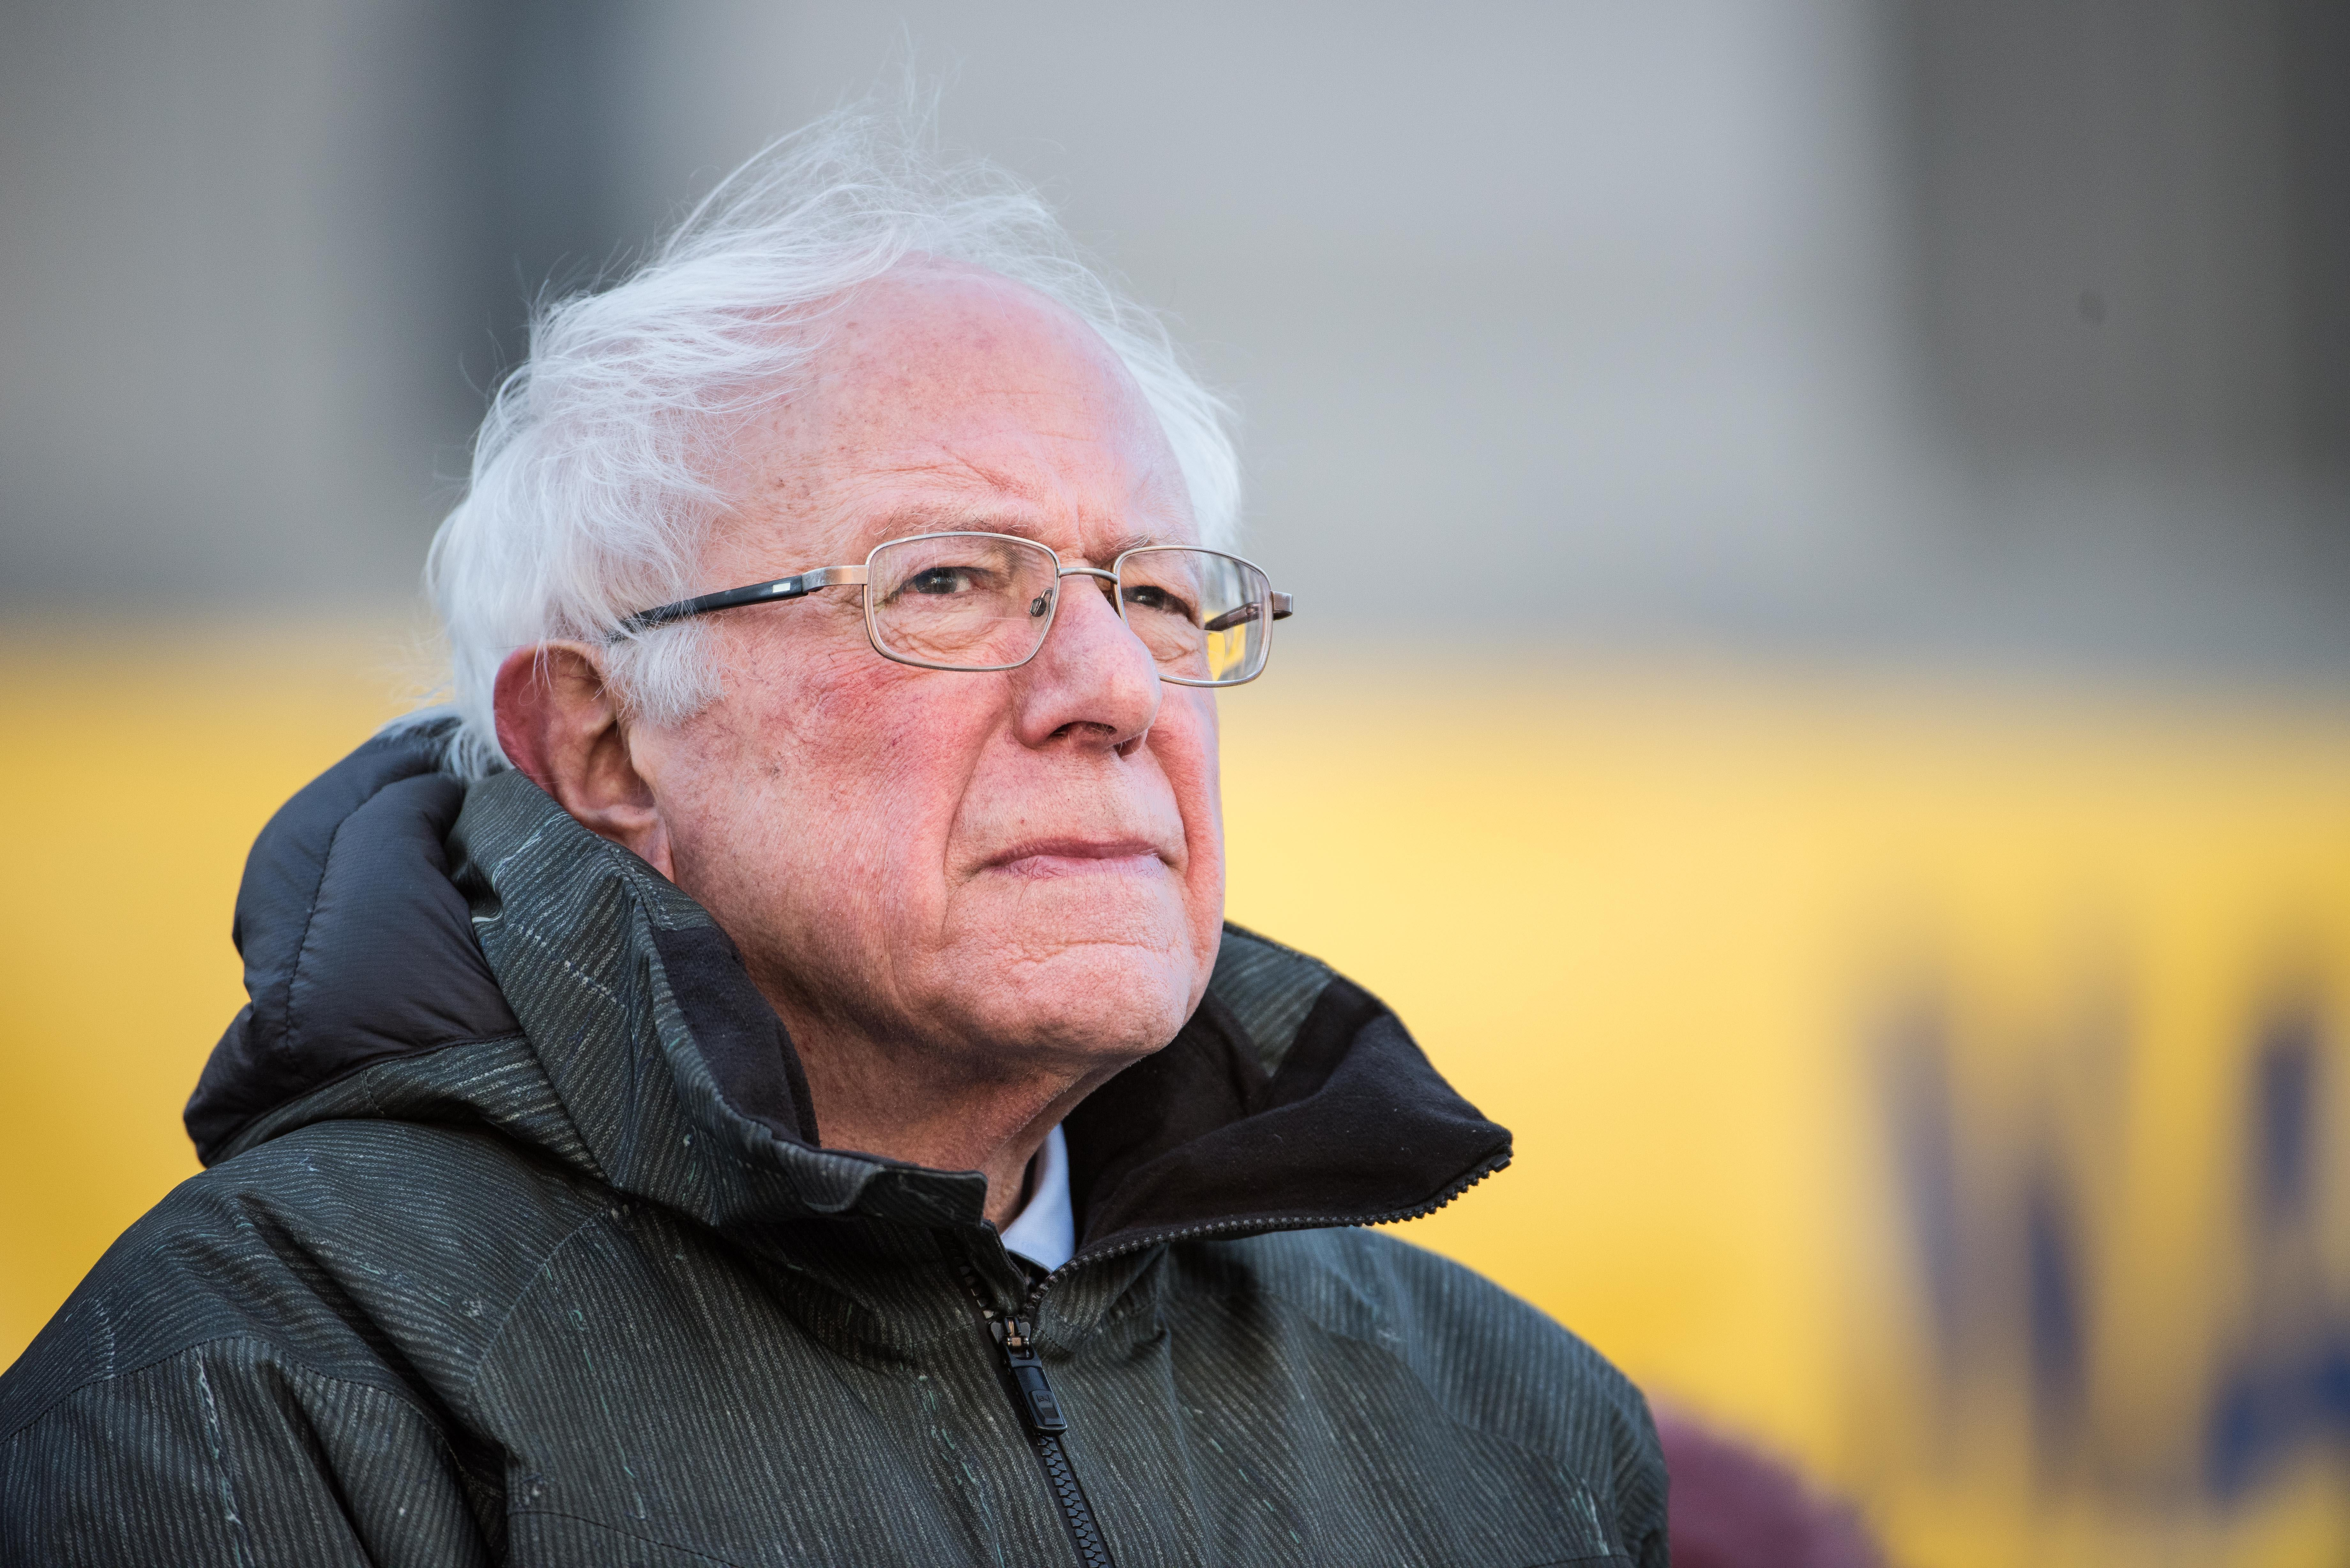 COLUMBIA, SC - JANUARY 21: U.S. Sen. Bernie Sanders (I-VT) stands on the statehouse steps during the annual Martin Luther King Jr. Day at the Dome event on January 21, 2019 in Columbia, South Carolina. Fellow potential Democratic presidential candidate, Sen. Cory Booker (D-NJ) joined Sanders at the event. (Photo by Sean Rayford/Getty Images)